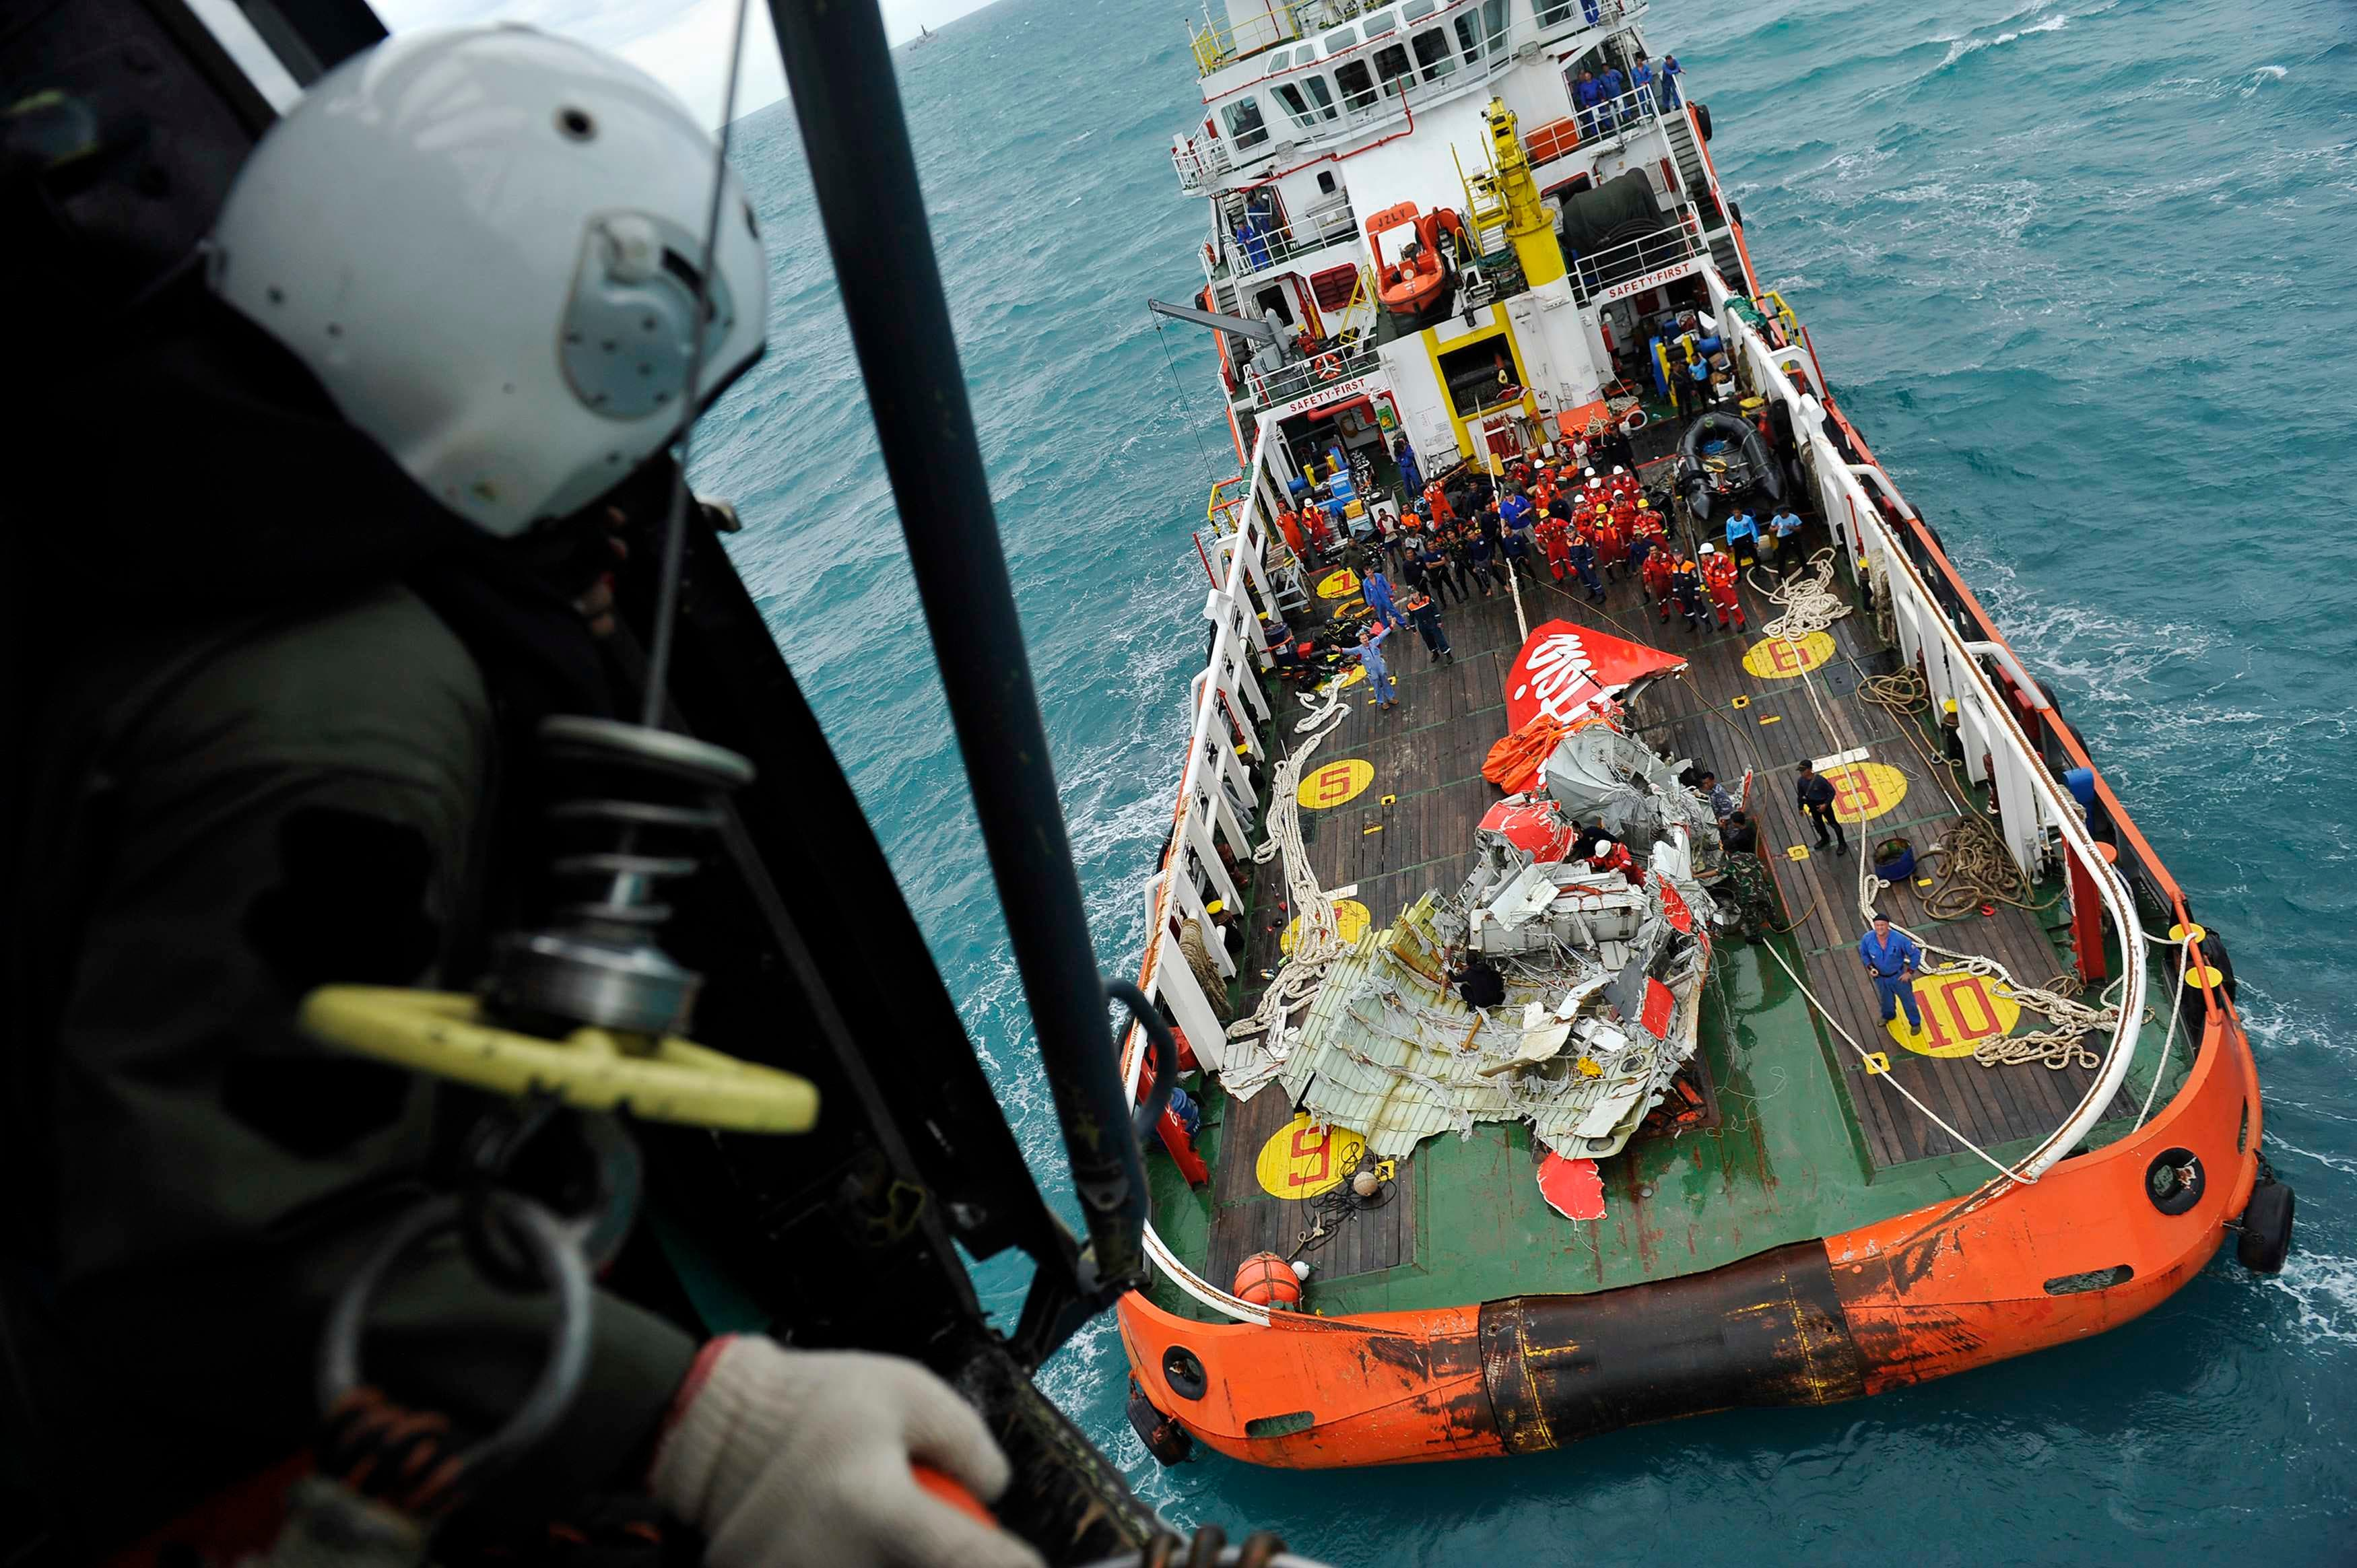 Sonar 'detects' crashed AirAsia's fuselage